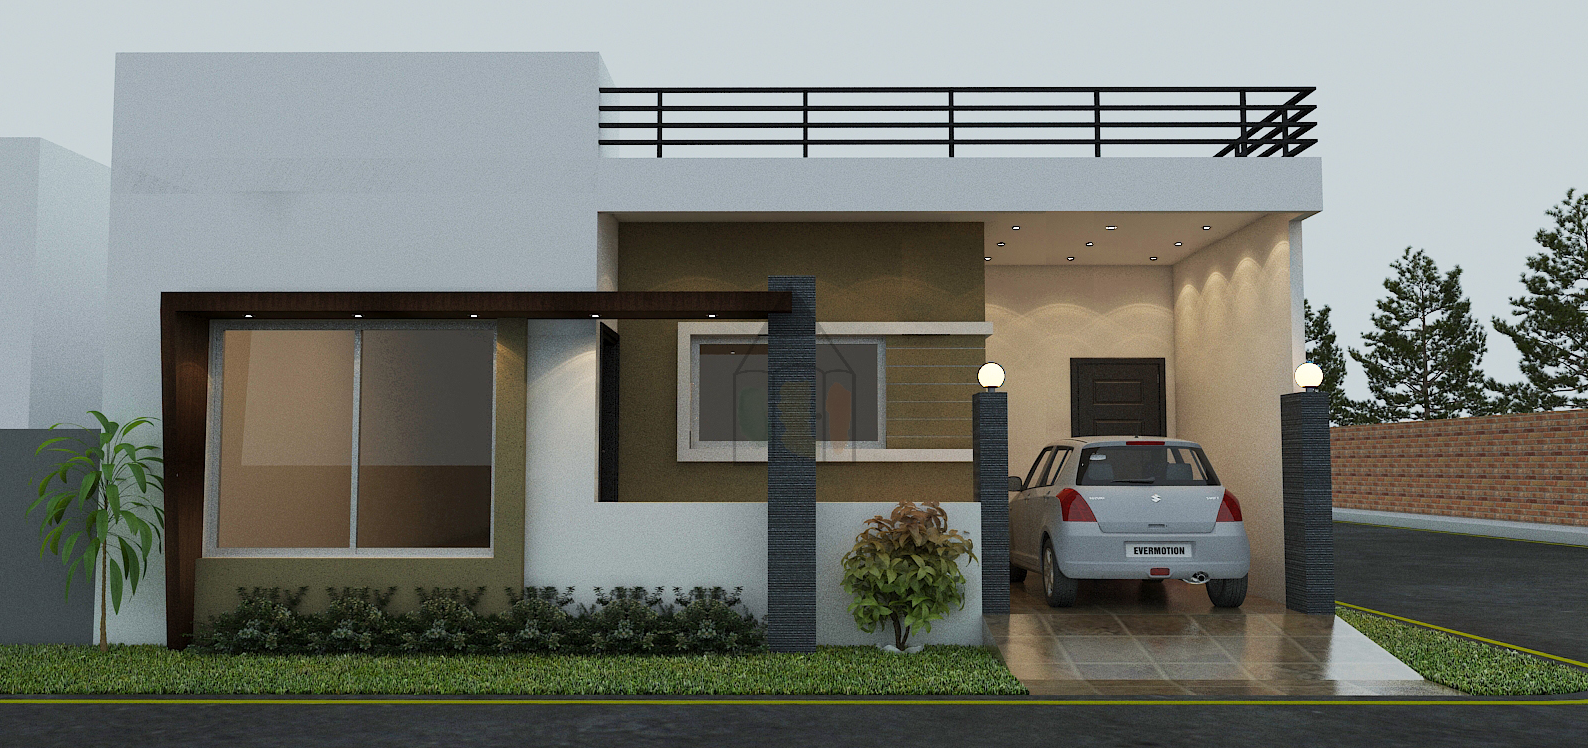 a36235a30fdf03f4b737f1a562905ed4 - View Single Floor Small House Modern Single Floor Small House House Elevation Design Background